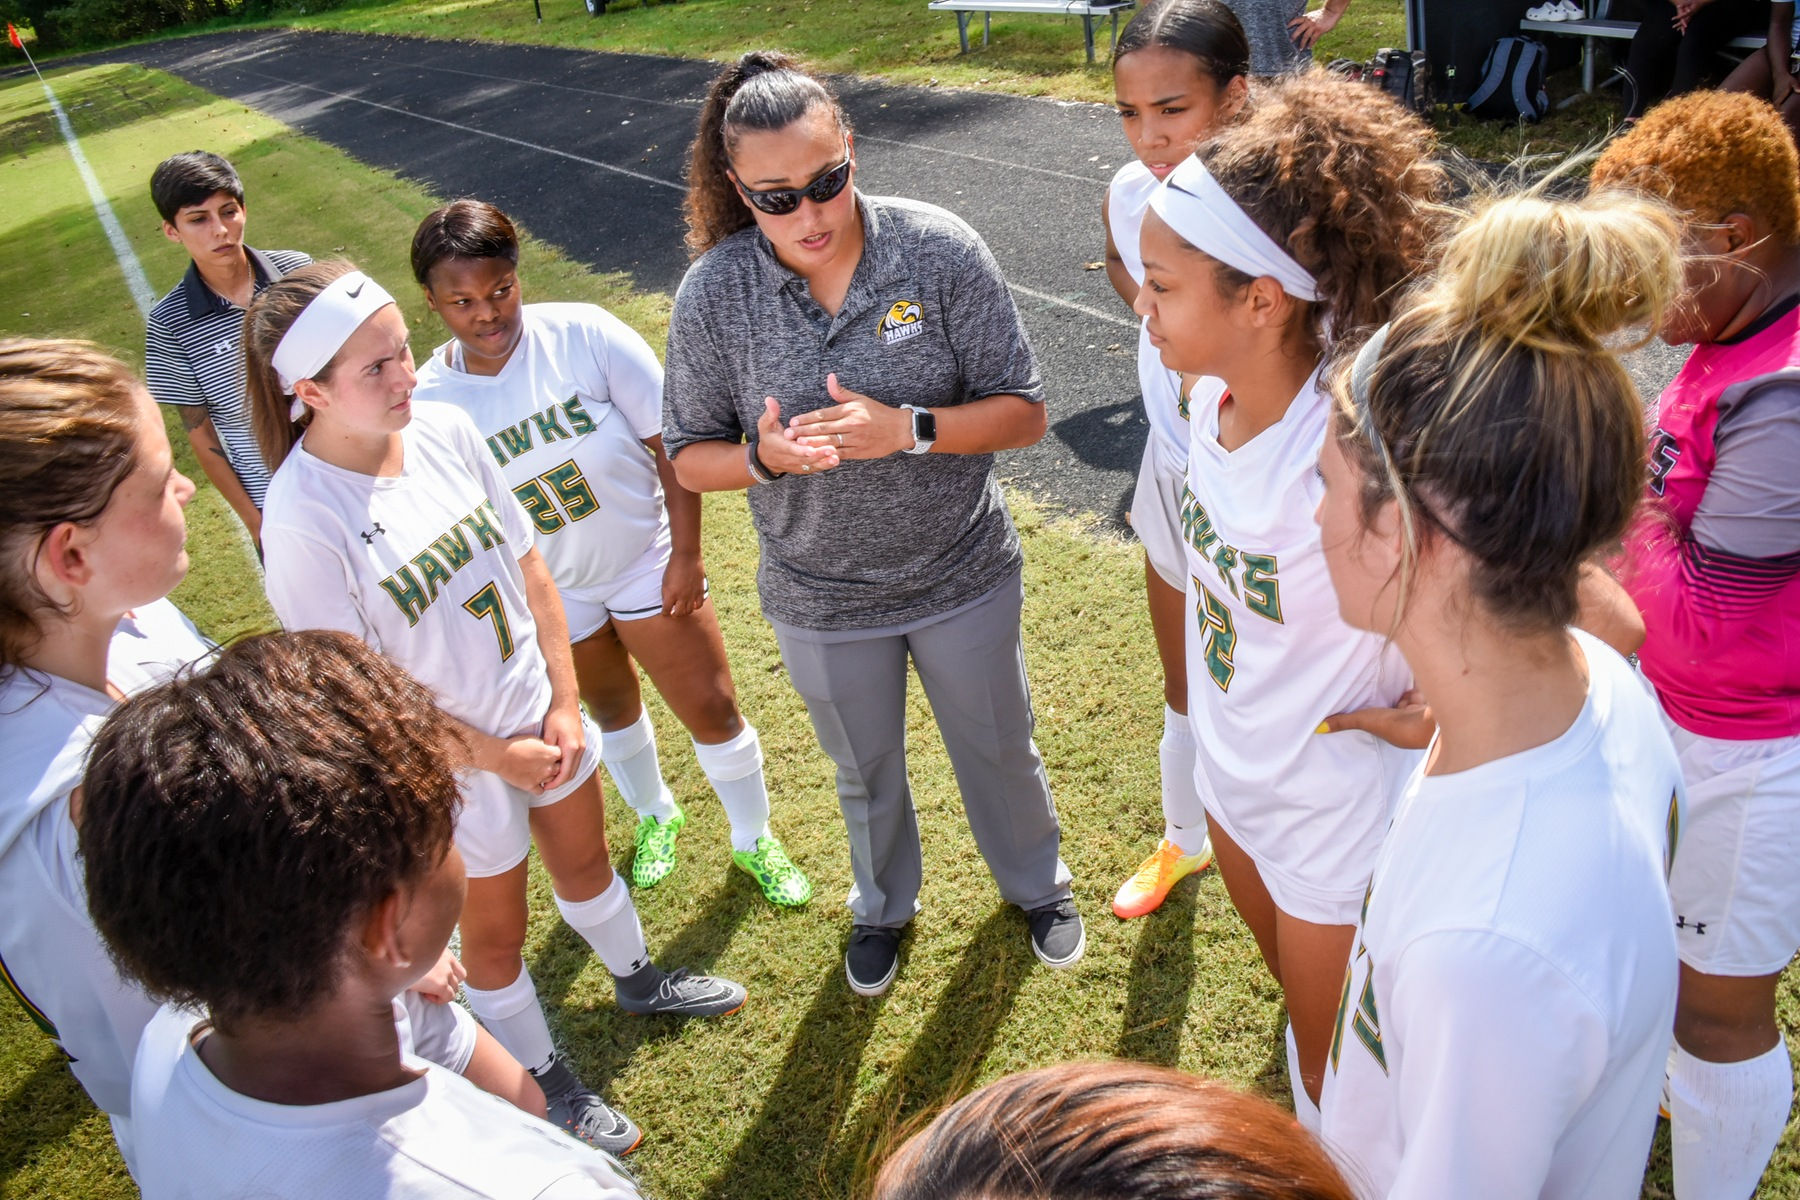 CSM Head Coach Nina Duron and the CSM Women's Soccer Team